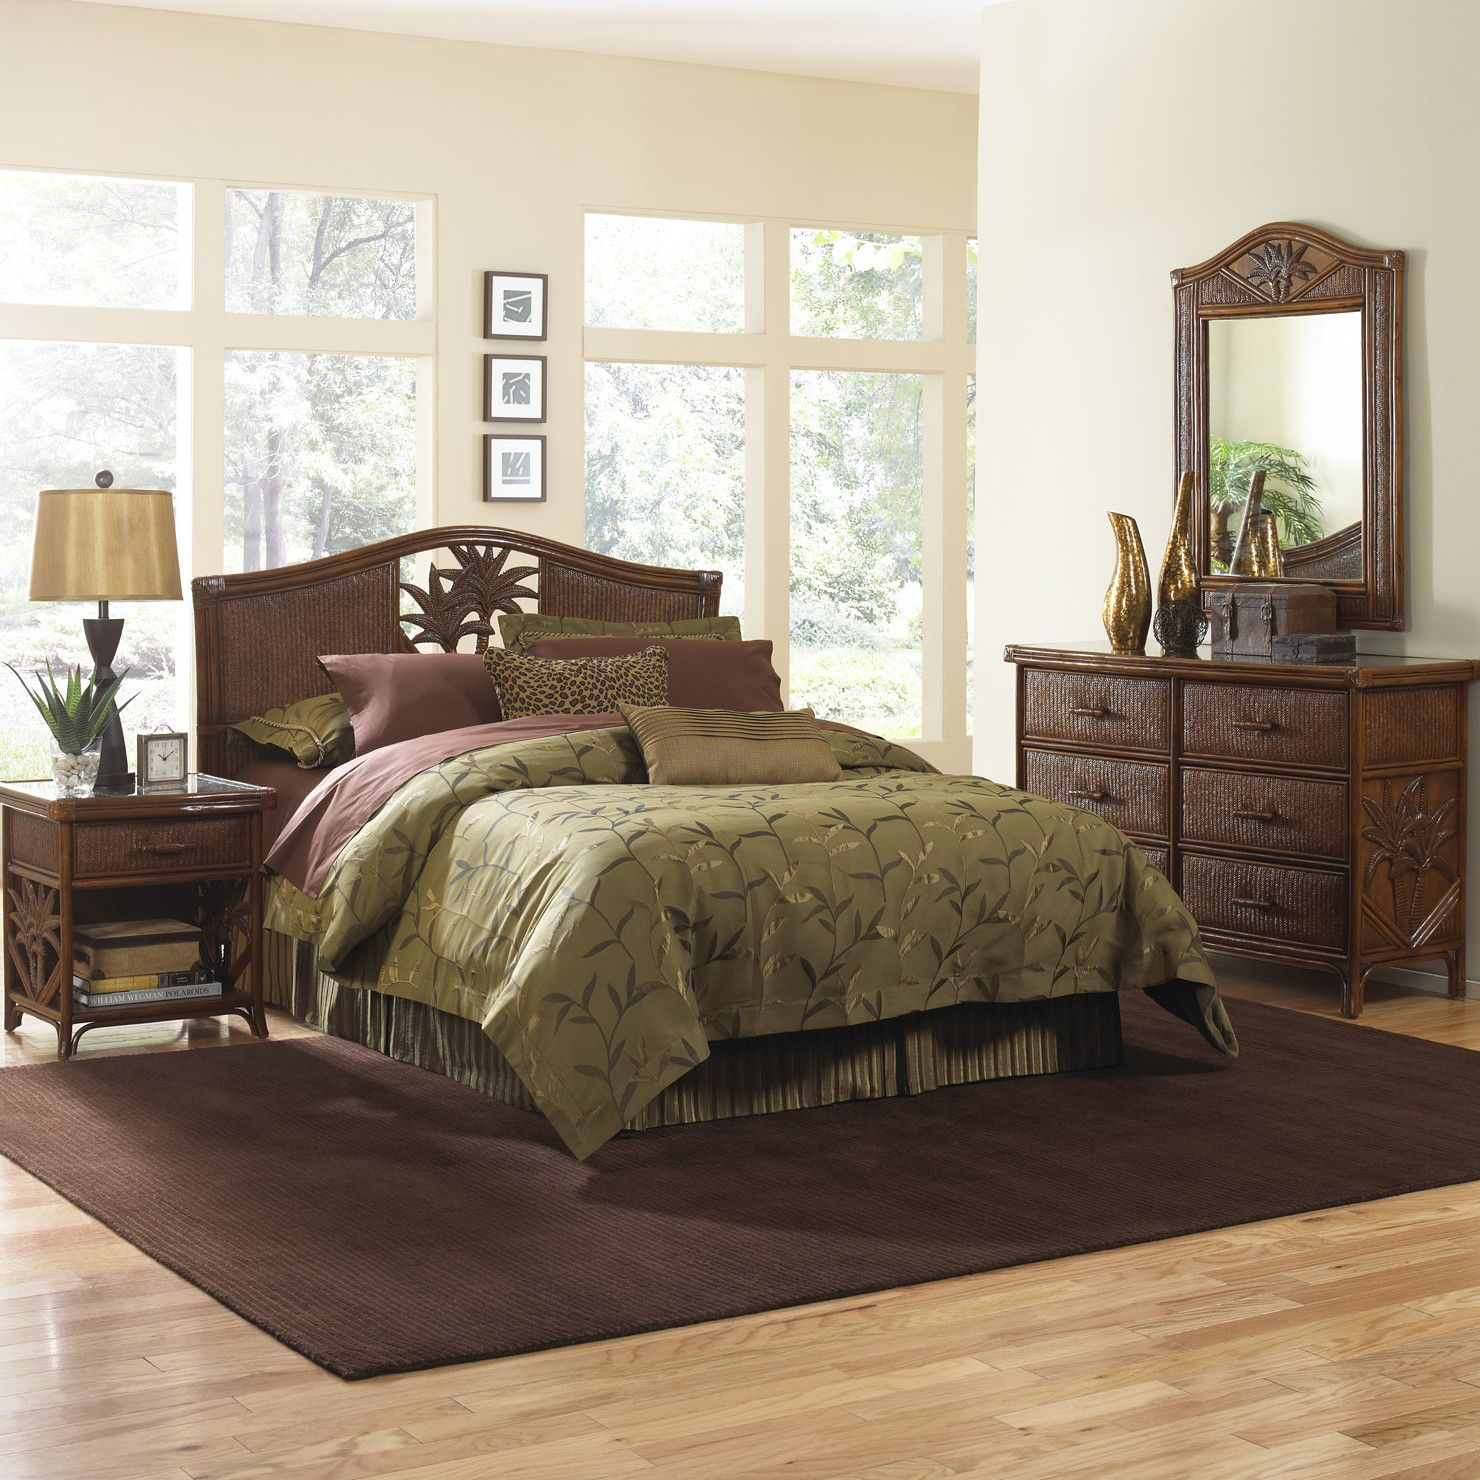 Hospitality Rattan Cancun Palm Panel 6 Piece Bedroom Collection